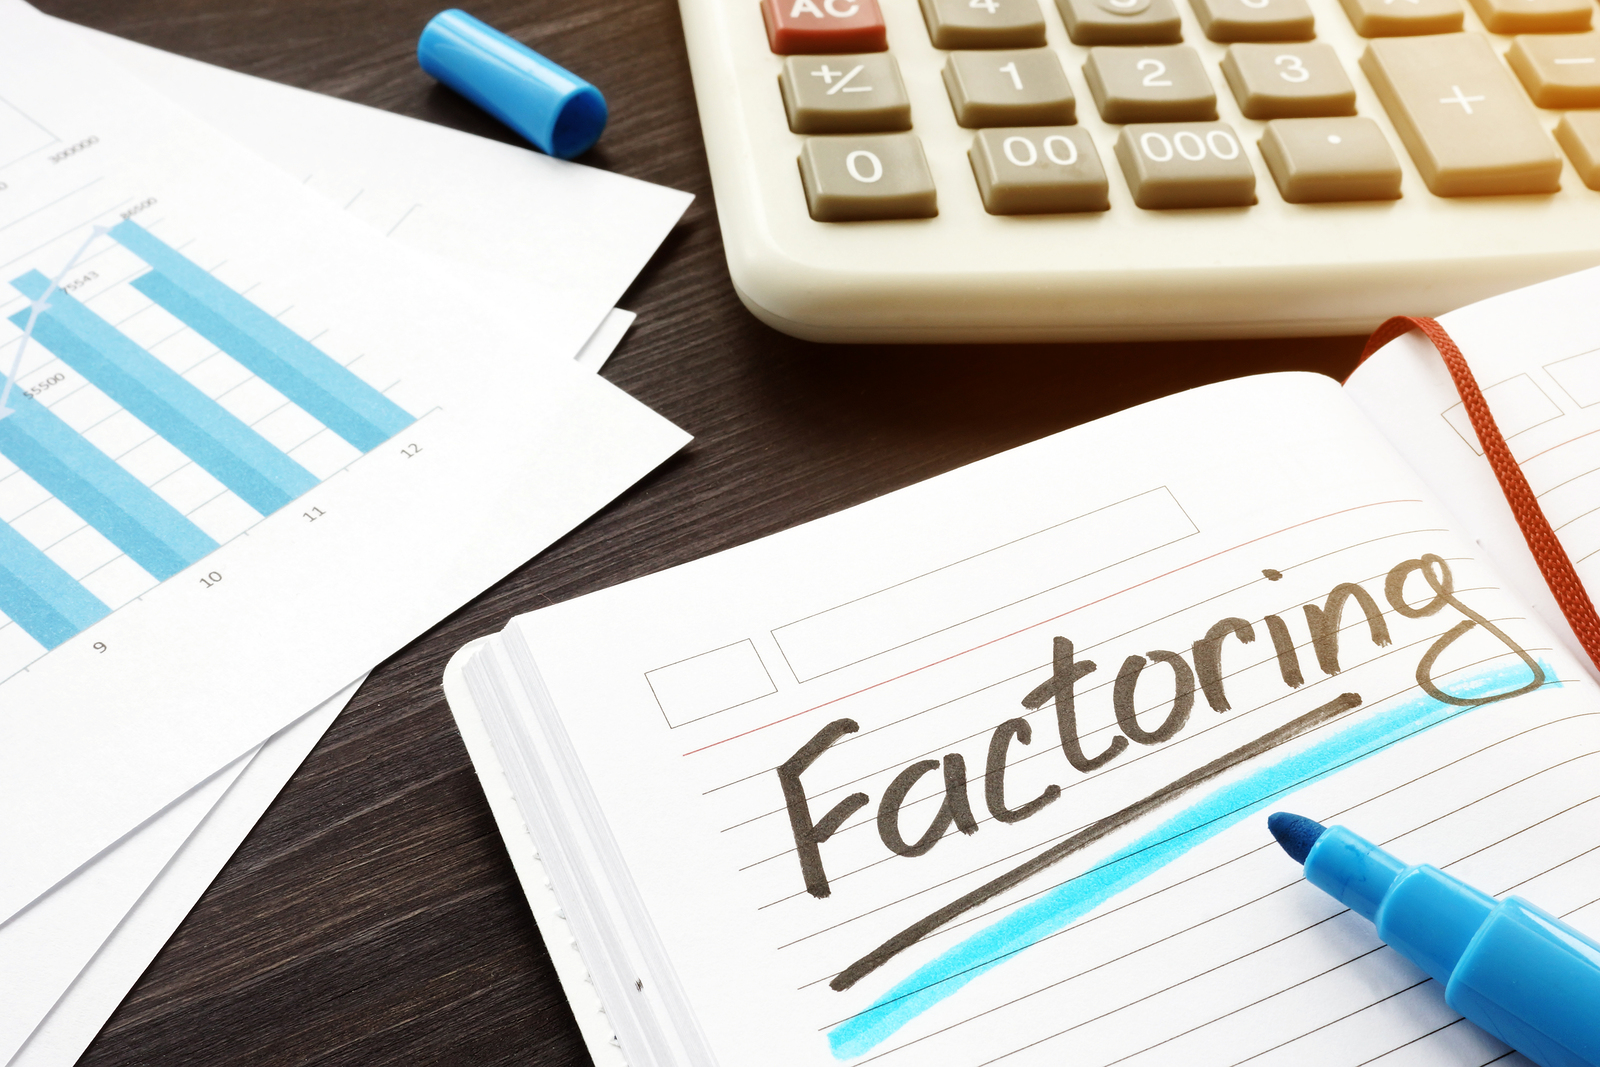 How do you make sure that factoring works for you?